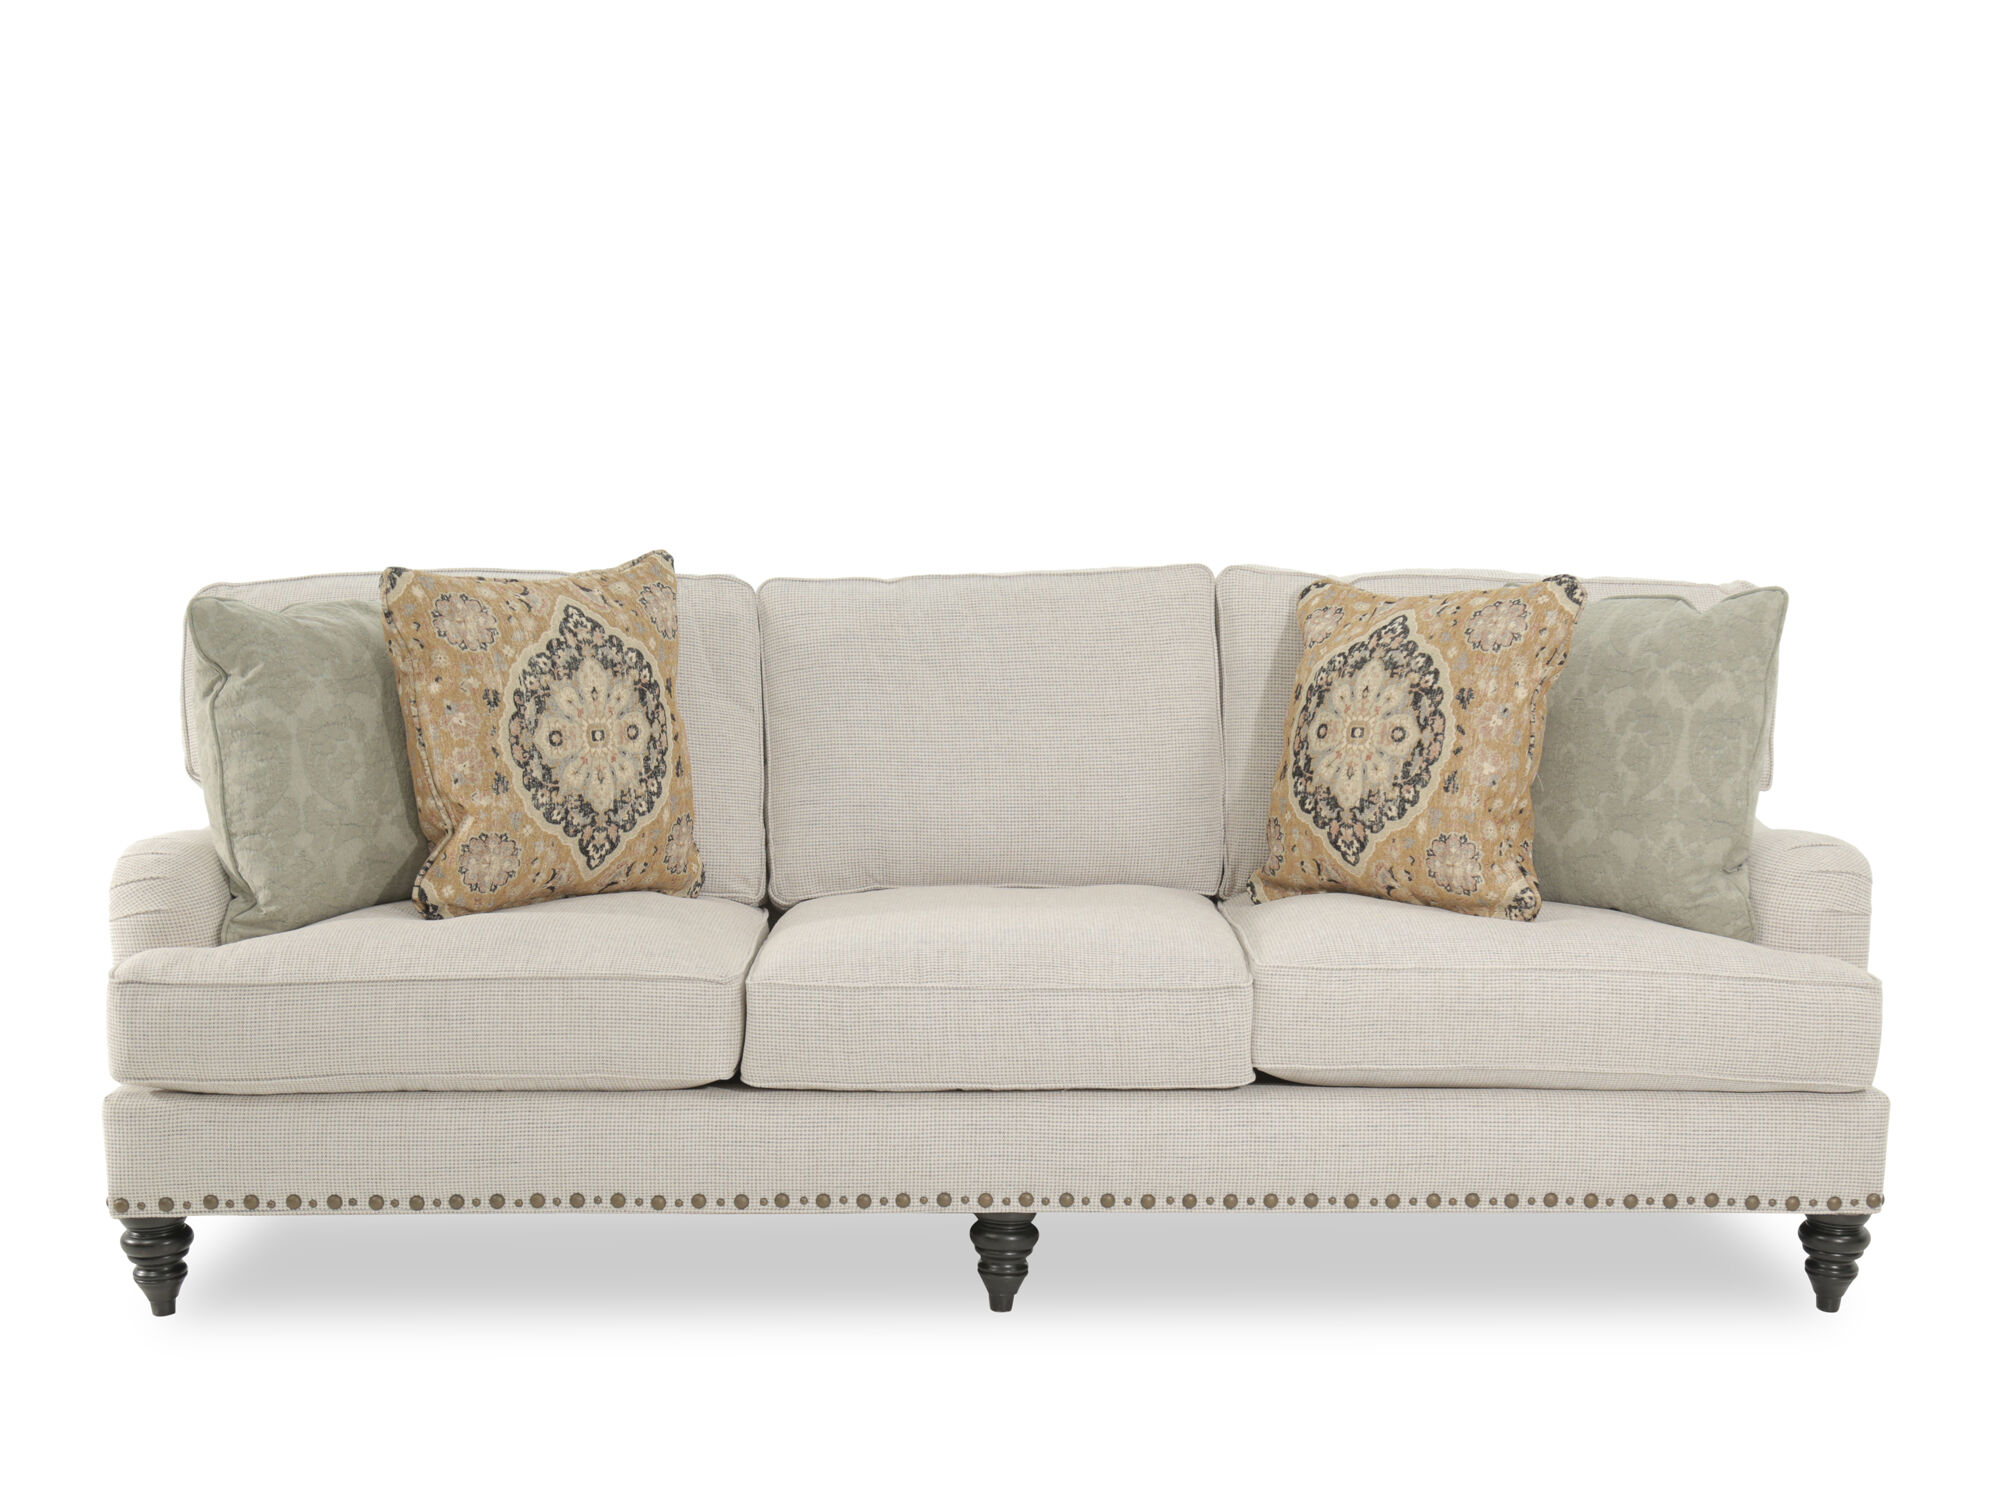 9 Broyhill Cambridge Sofa Beige Sofas Loveseats Leather